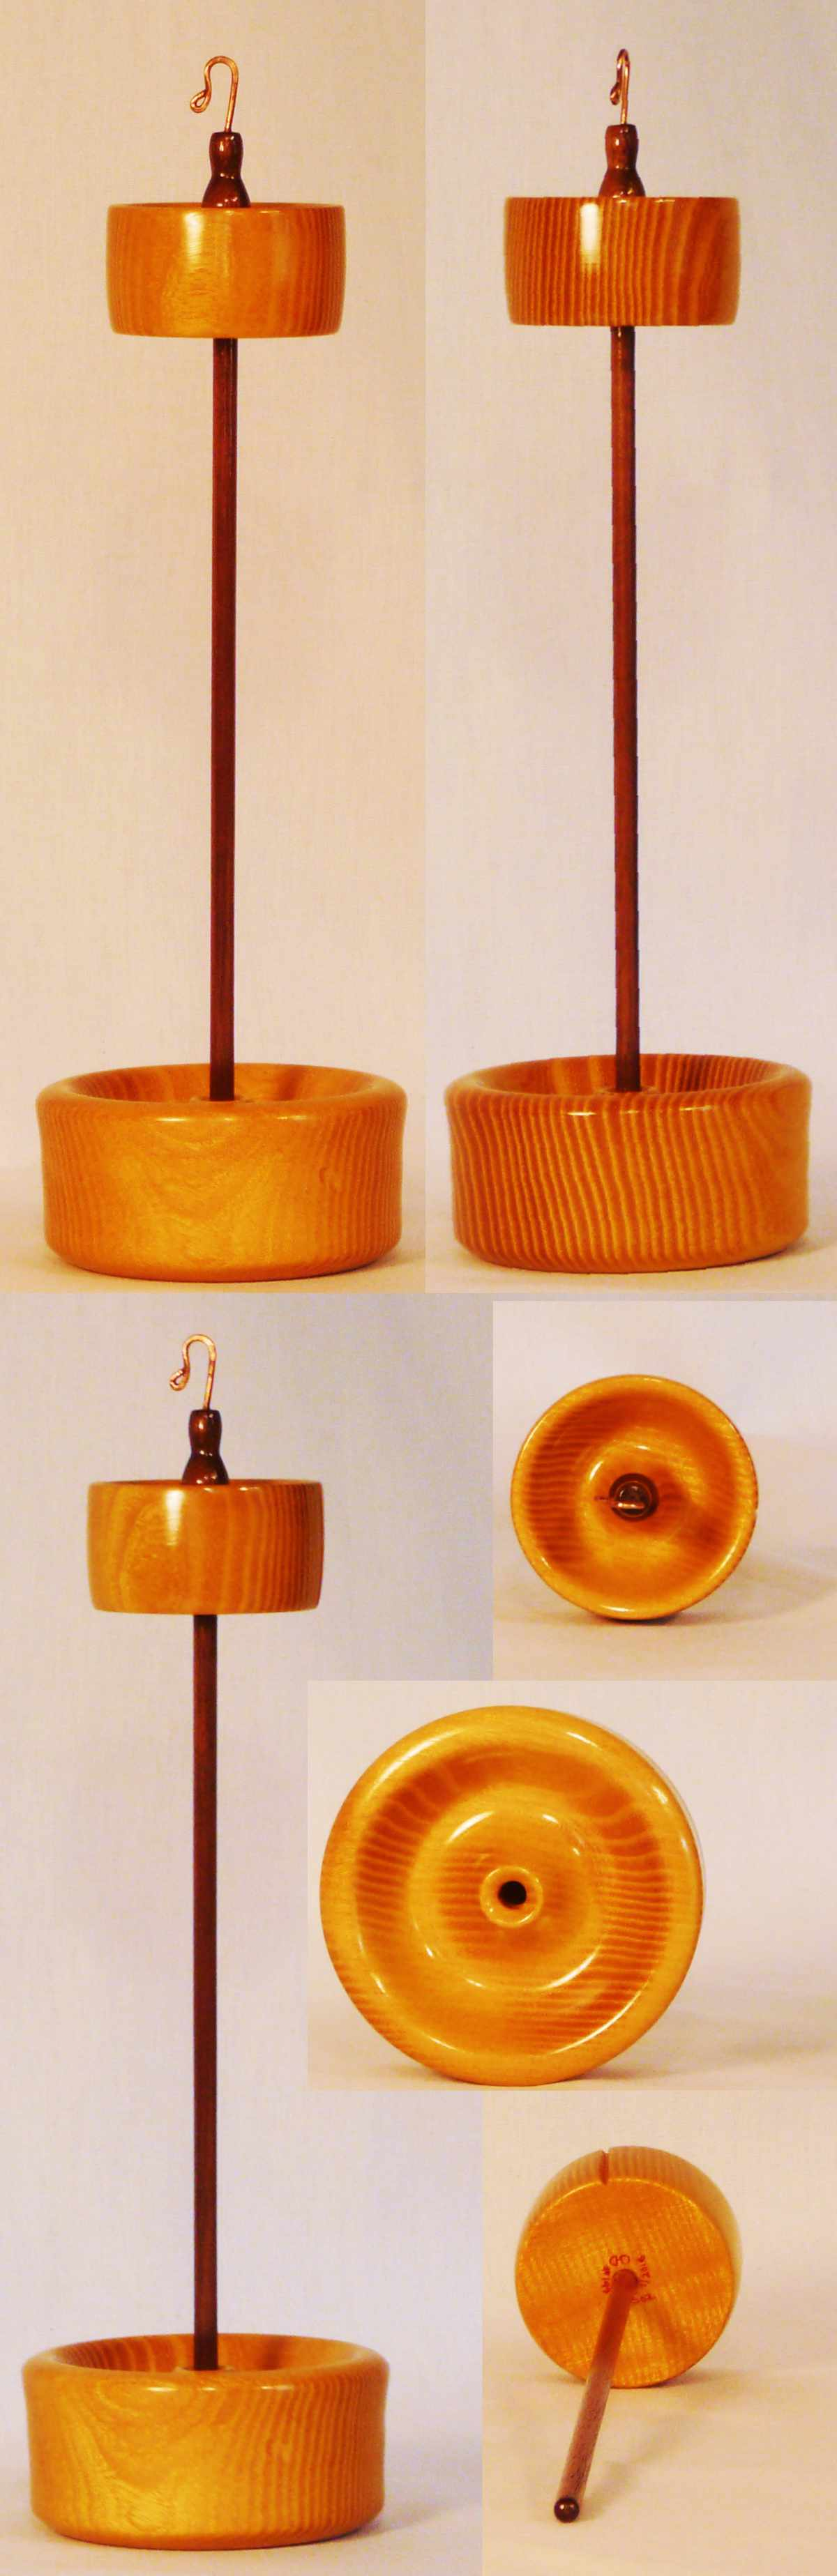 Top whorl drop spindle and matching display stand in Osage Orange on a Walnut Shaft.  Signed number 144 by Cynthia D. Haney